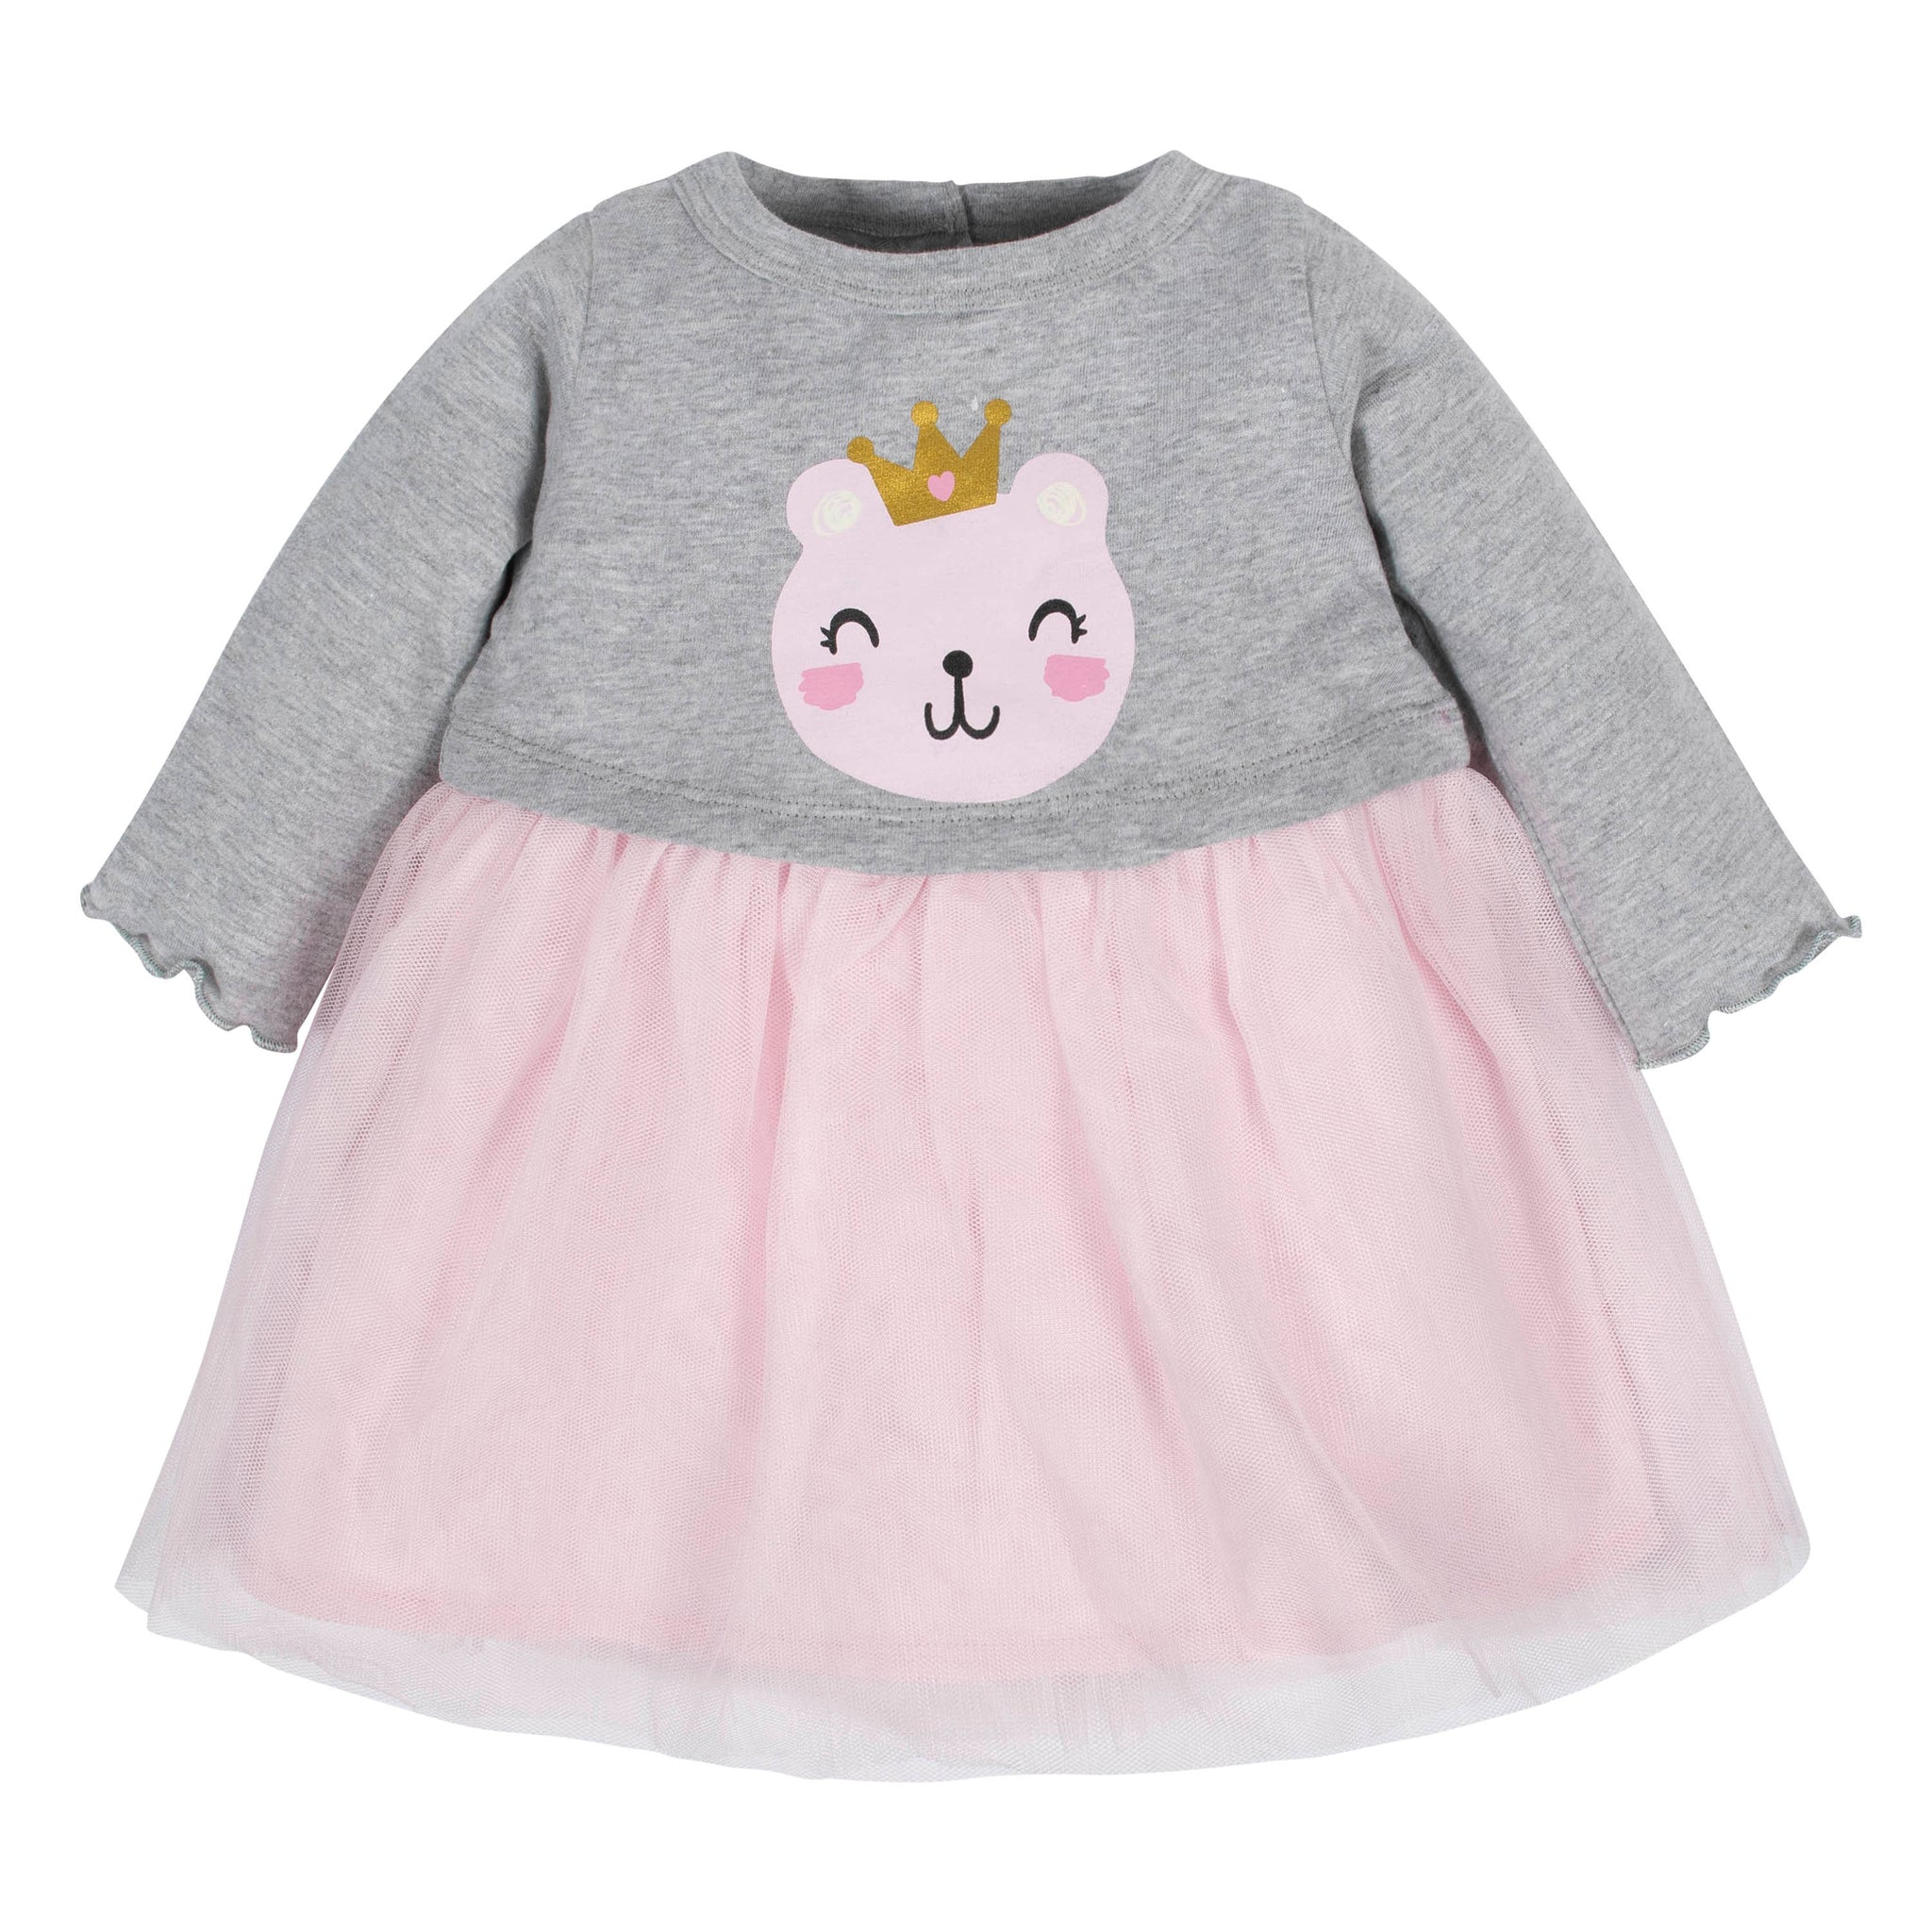 Baby Girls Princess Bear Tulle Dress-Gerber Childrenswear Wholesale